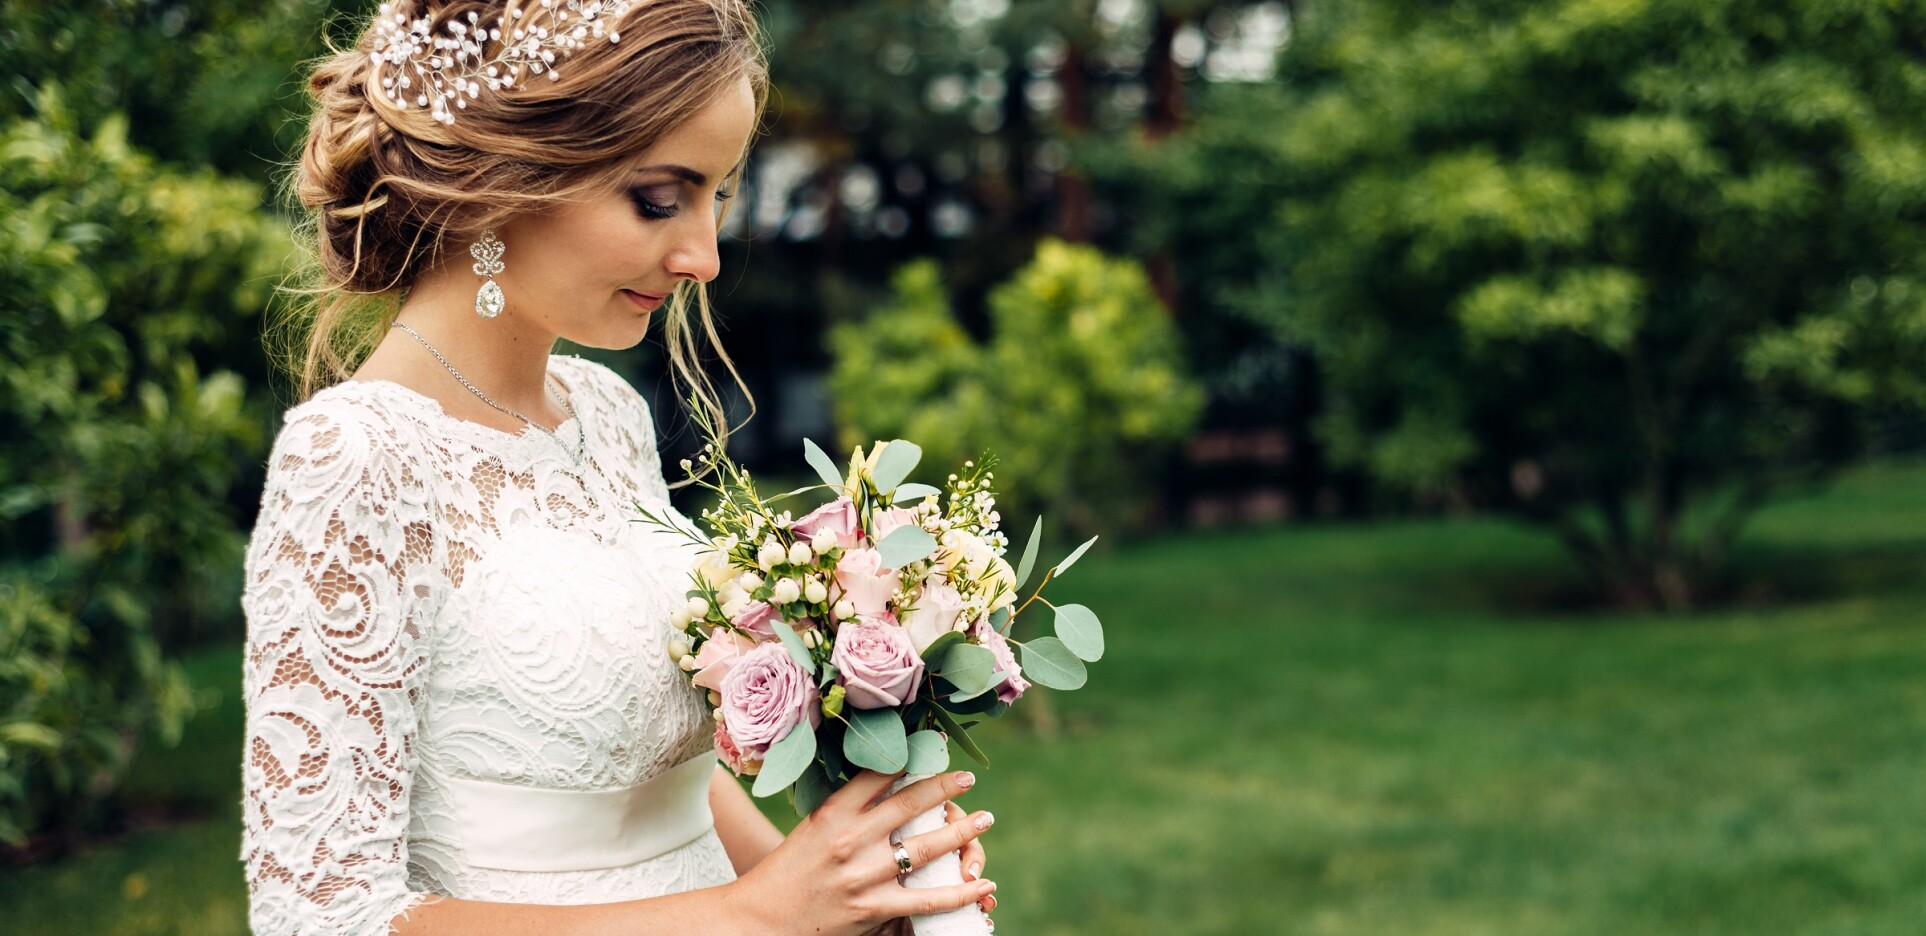 the bride in a white long dress with a wedding bouquet is standing alone and looks at a bouquet of flowers